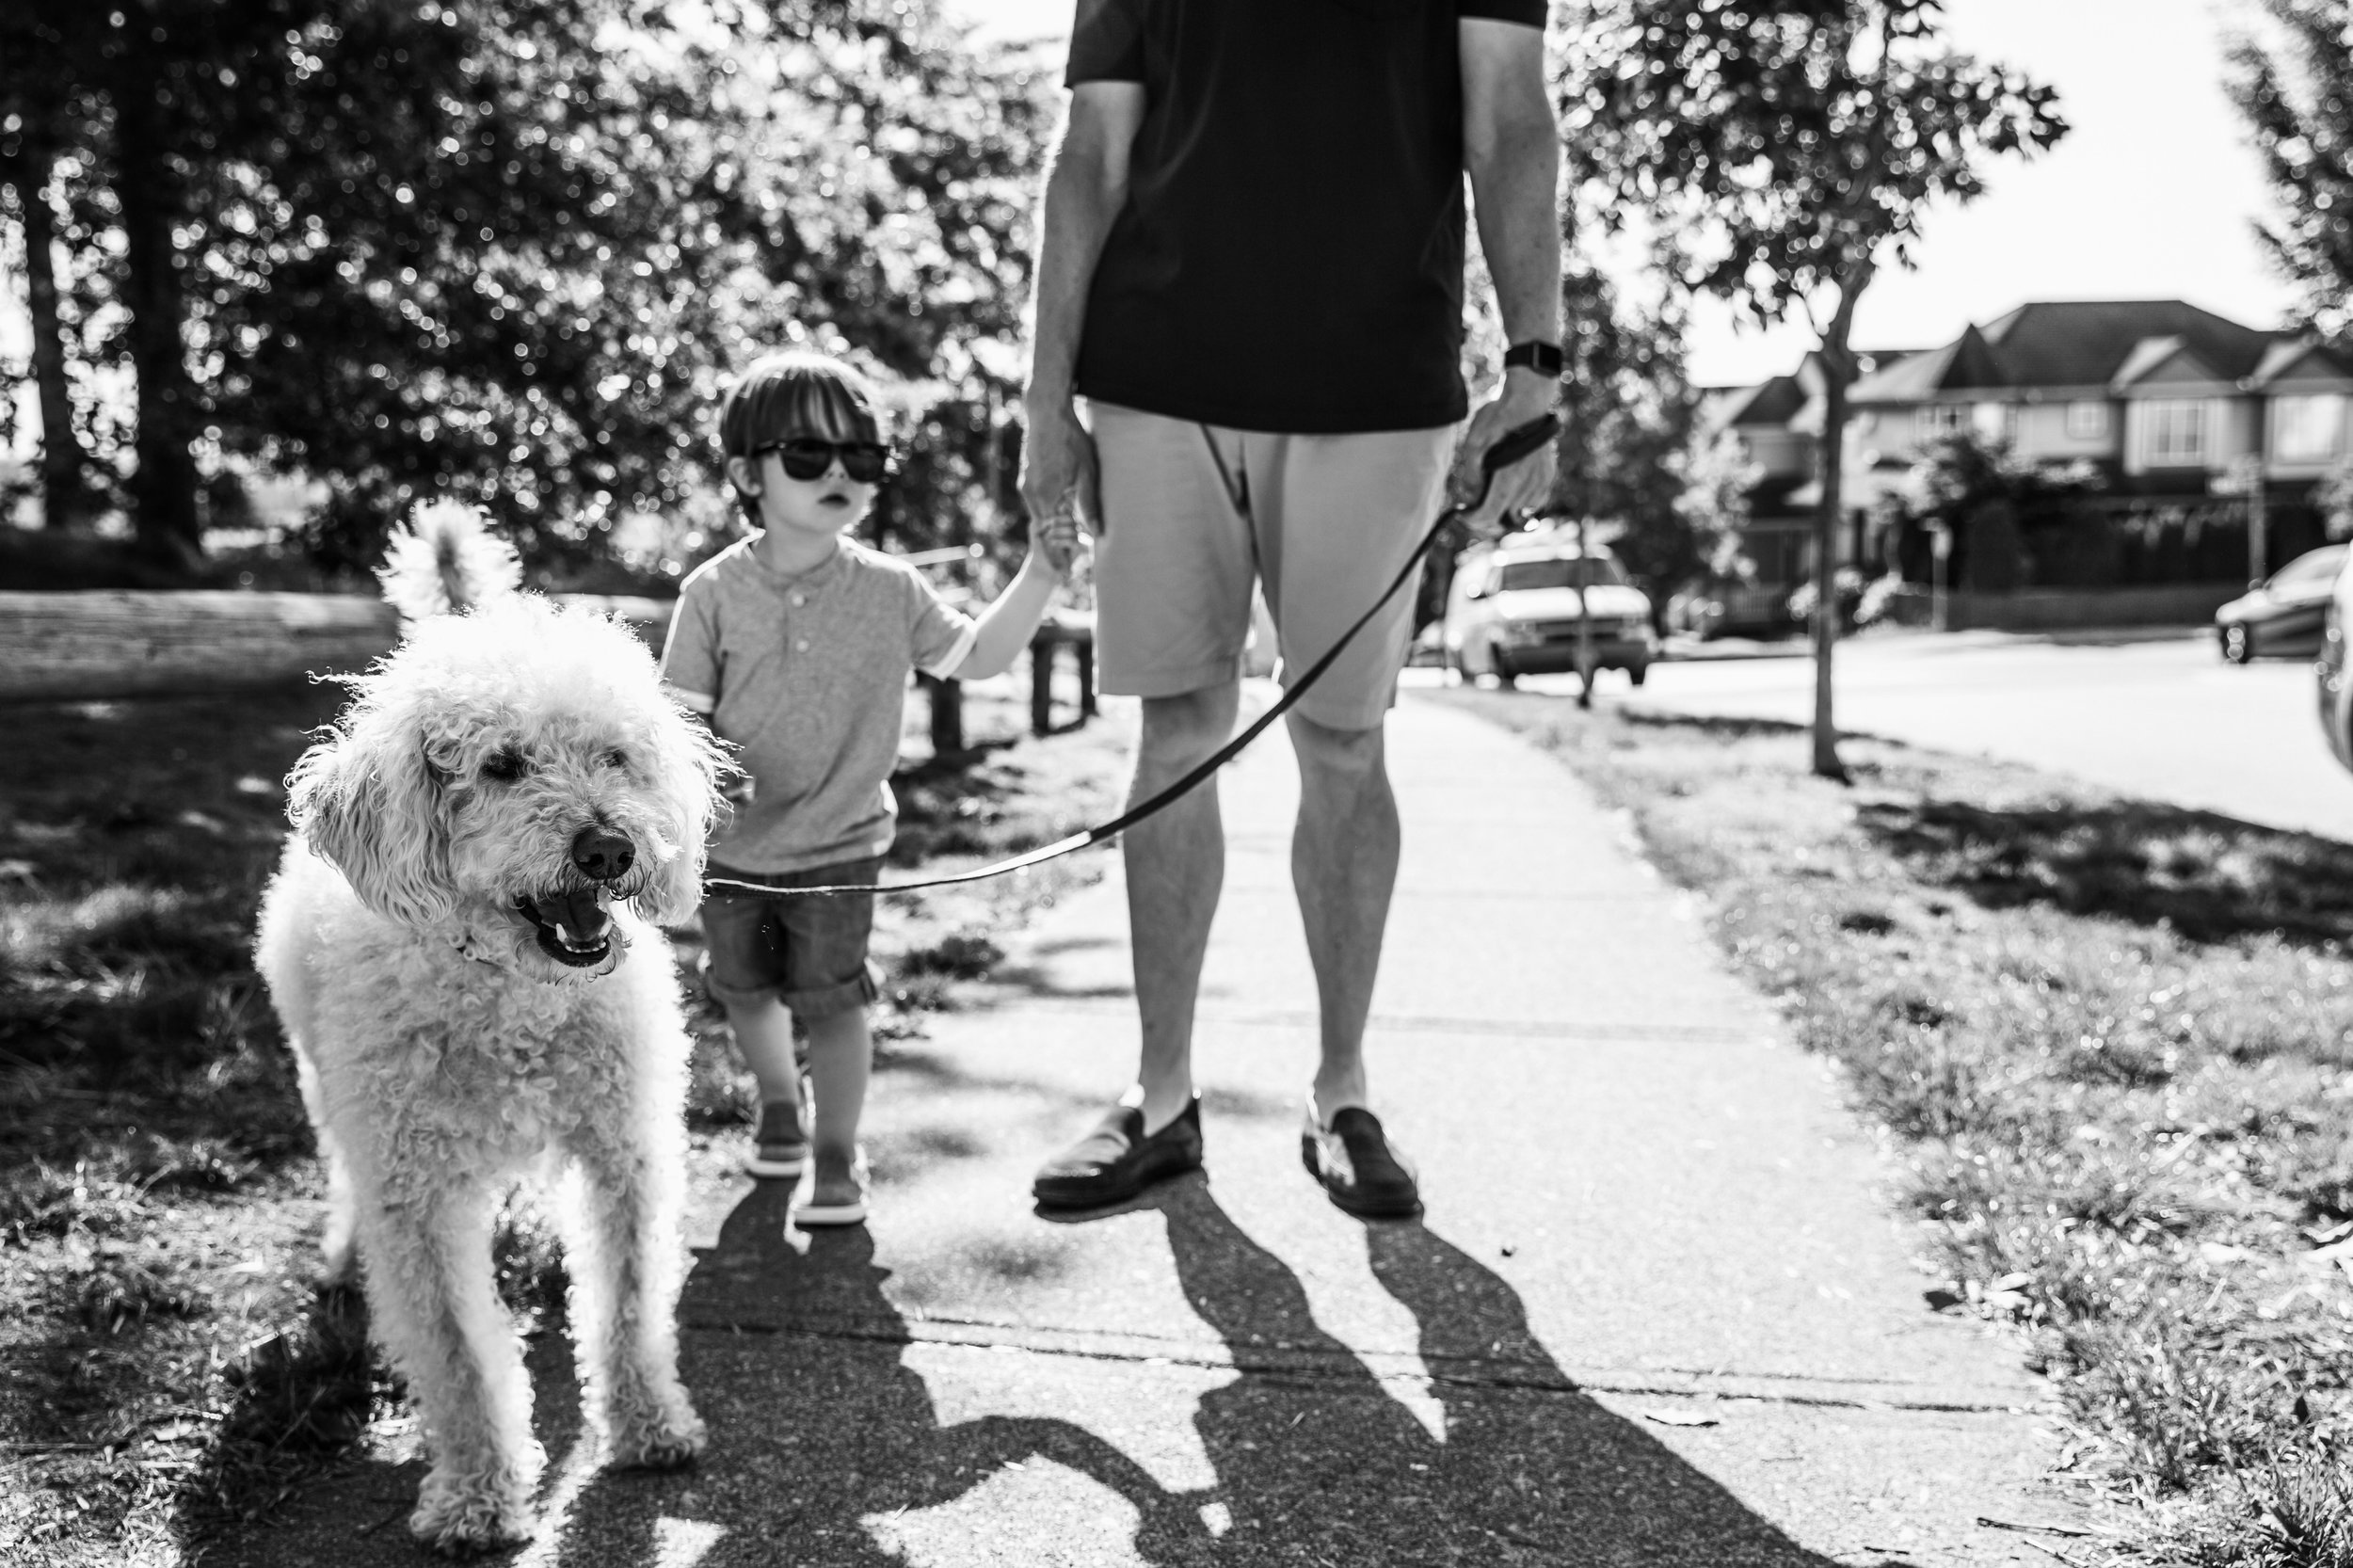 dad, dog and son going for a walk, dog in front